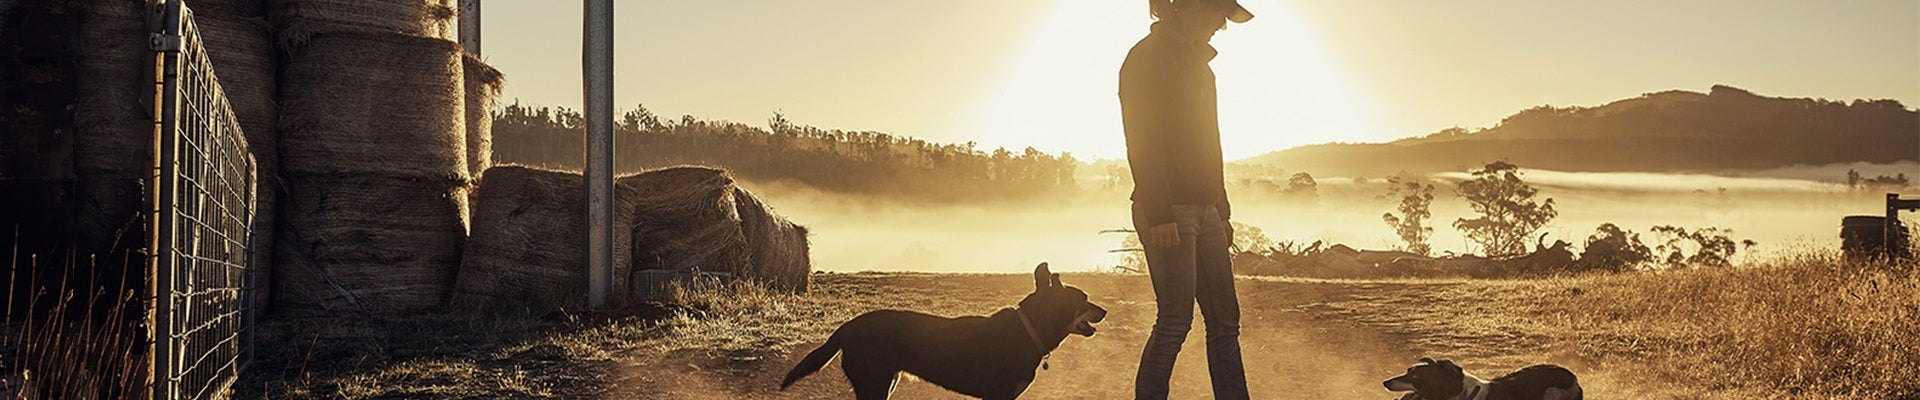 Dog Sunset Hero Banner 1920x400